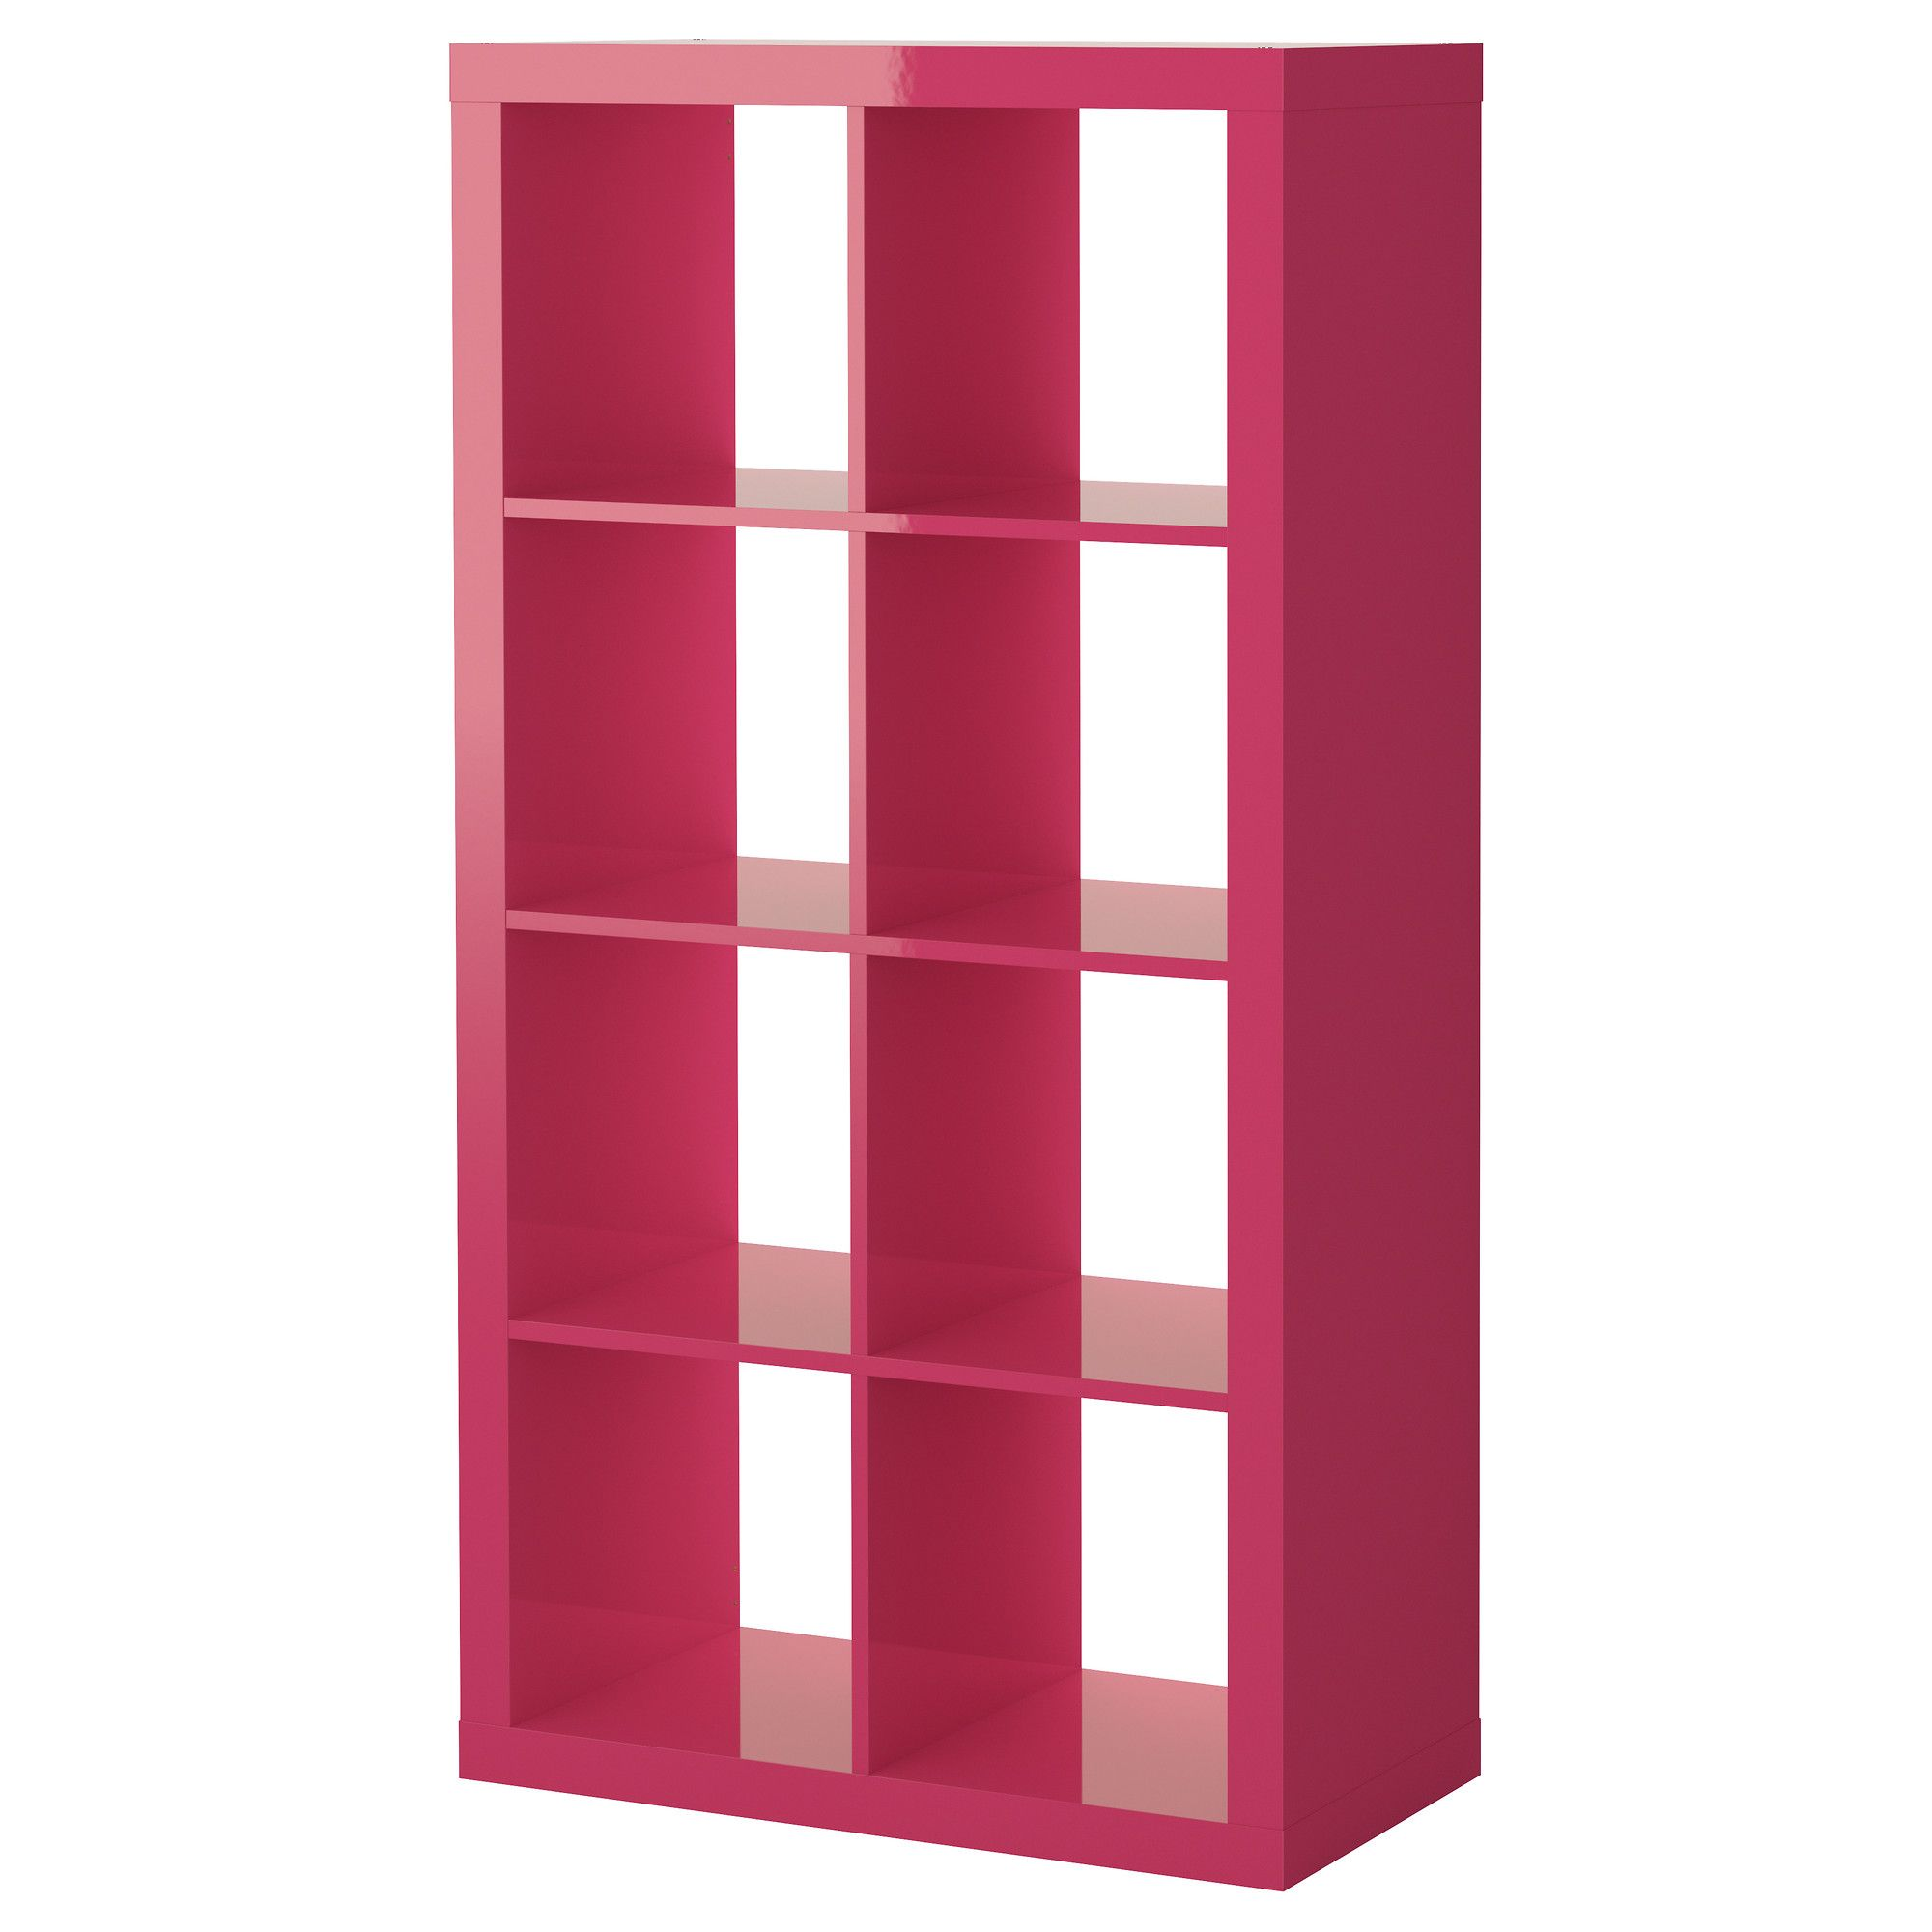 Expedit Shelving Unit High Gloss Pink Ikea White Gray Drawer And Cabinet Inserts